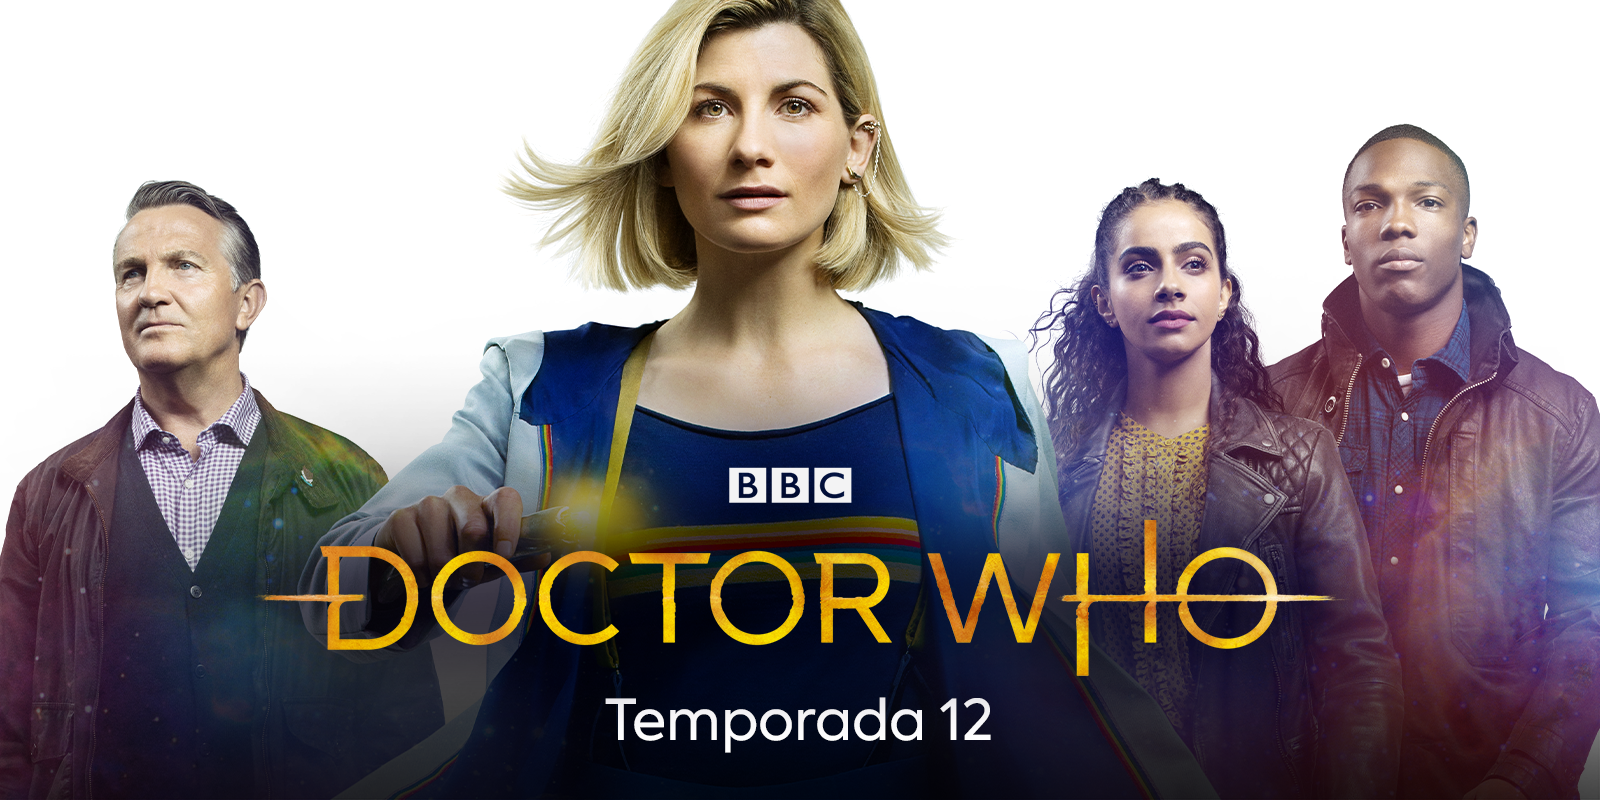 Doctor Who season 12 banner